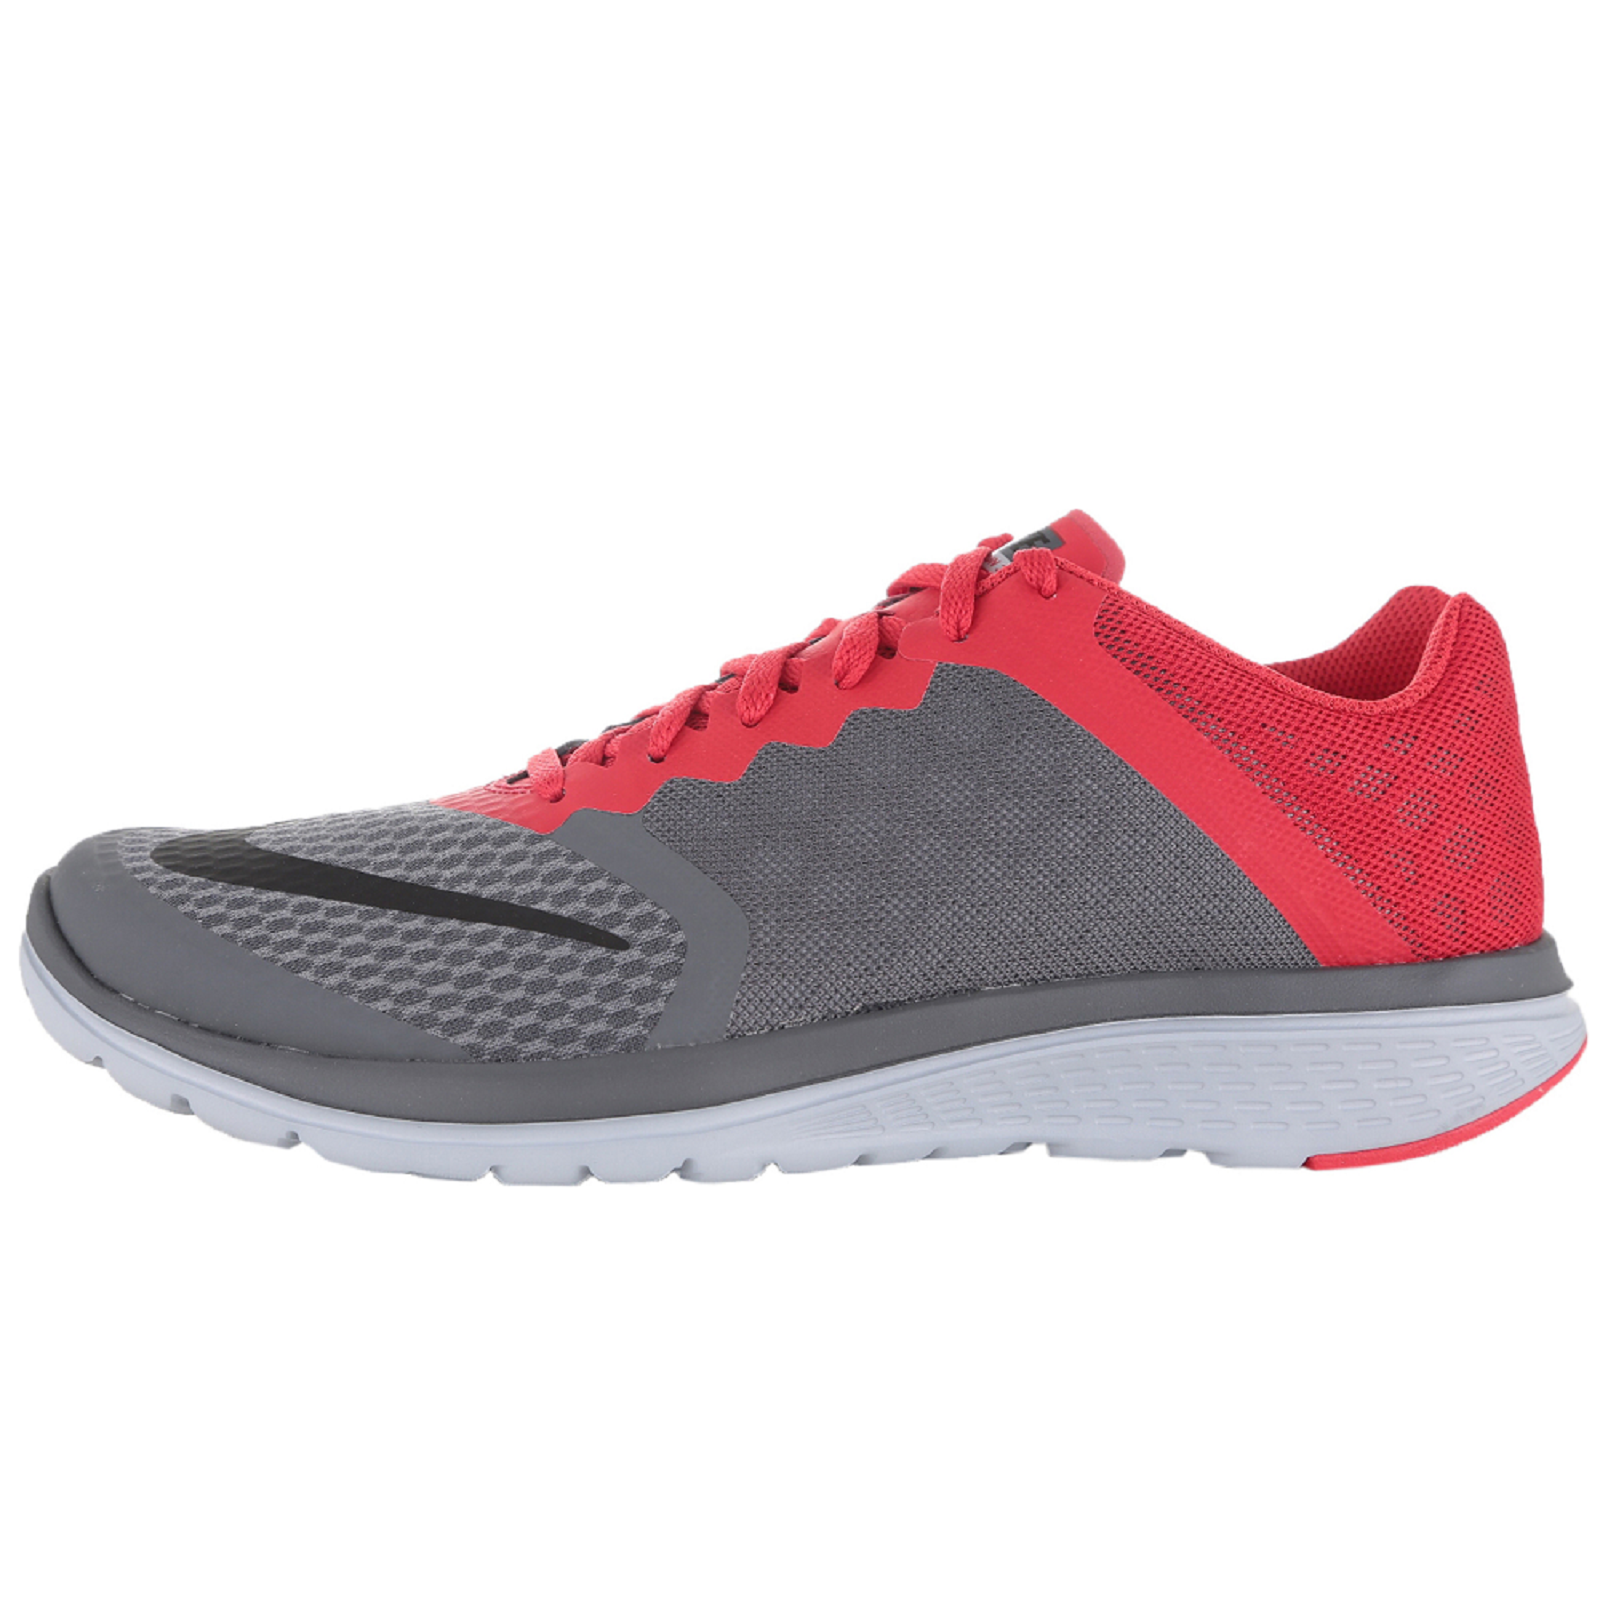 half off 04d6e 9eded Details about Nike FS Lite Run 3 Men´s Sport Shoes Trainers Sneakers grey  807144 006 WOW SALE